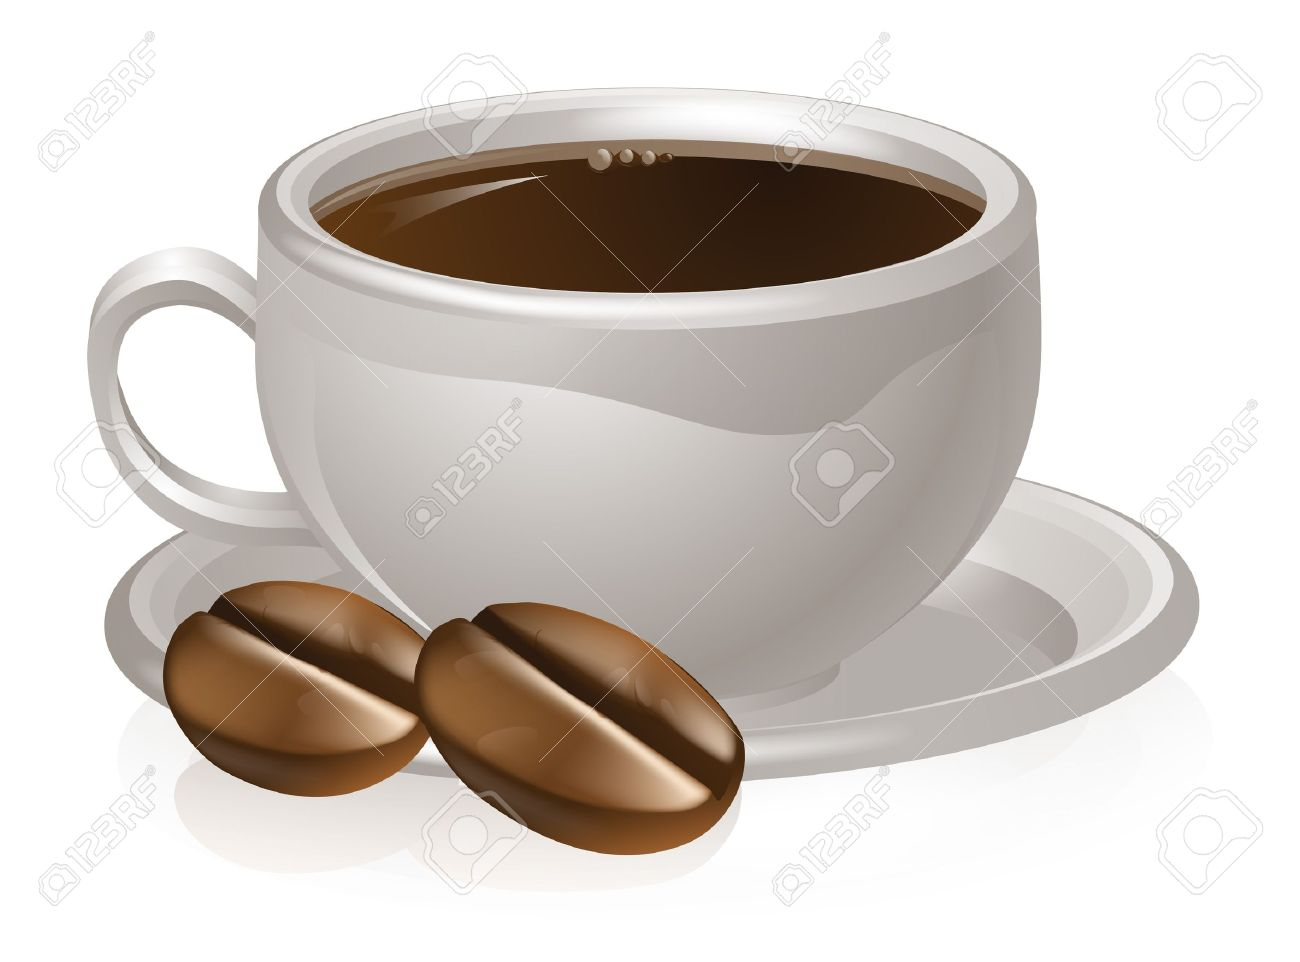 1300x962 Illustration Of A Cup Of Coffee And Coffee Beans With White Coffee